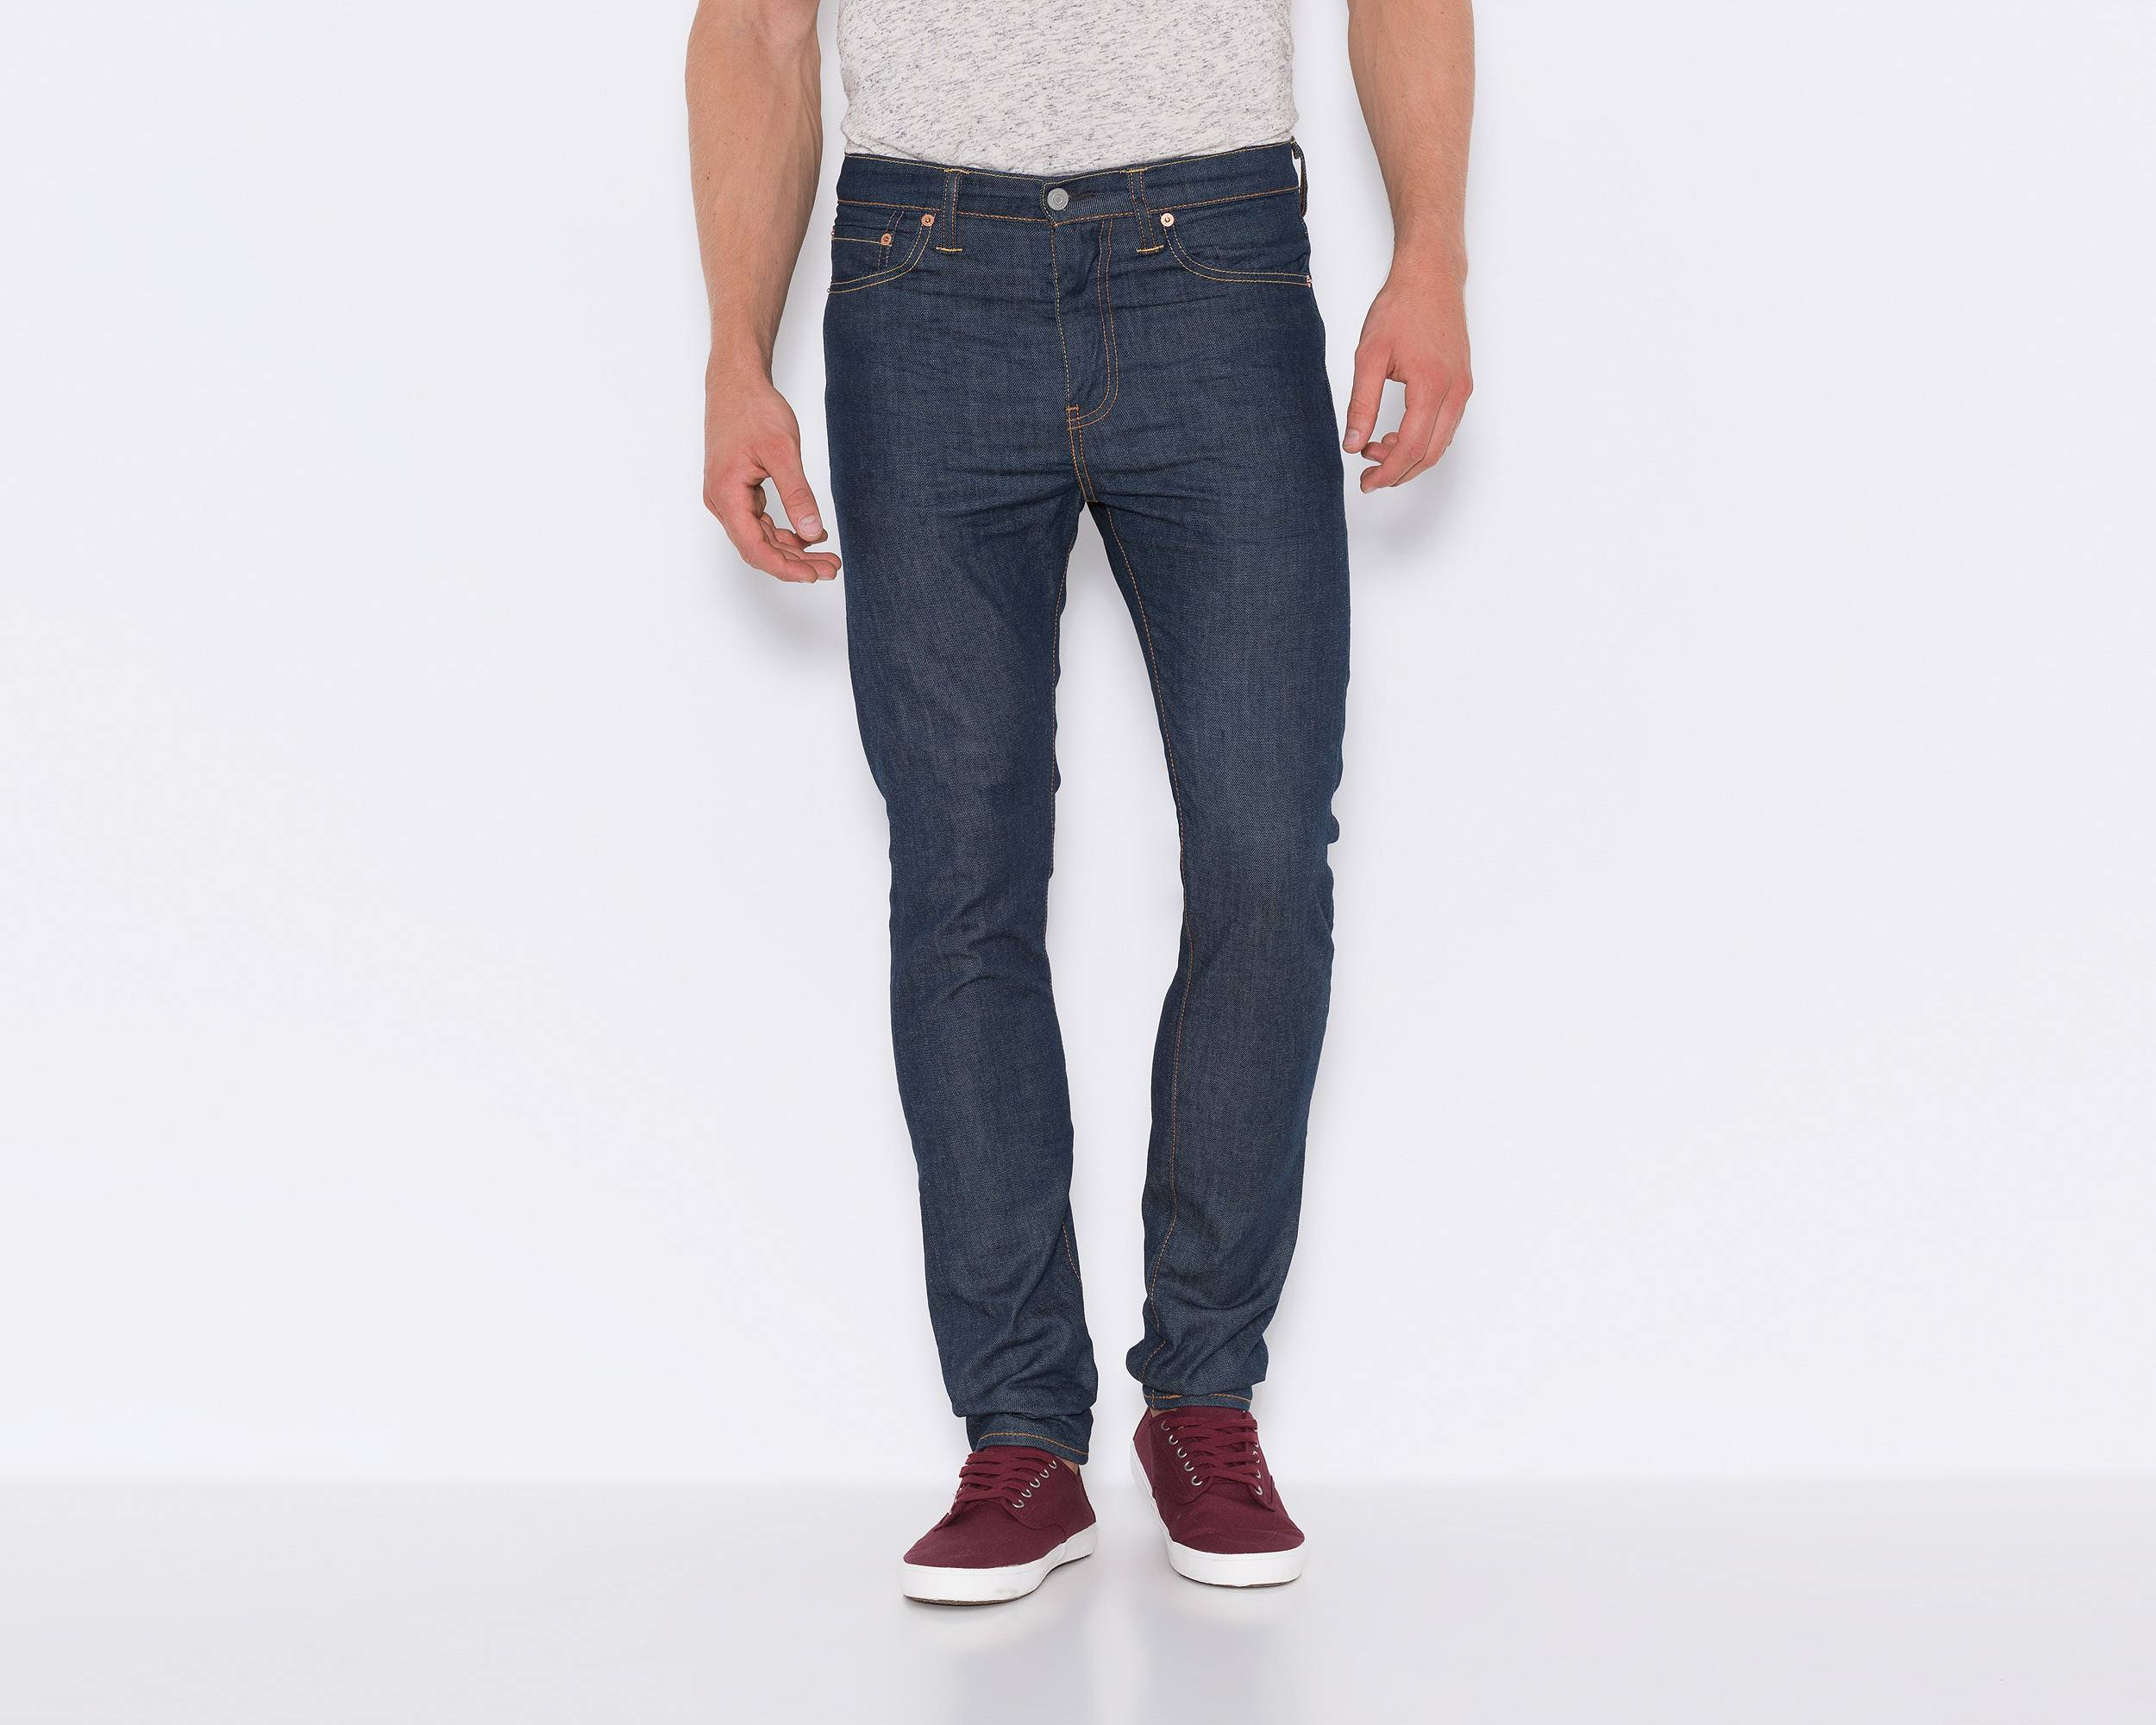 510™ Skinny Fit Jeans | Broken Raw |Levi's® Norway (NO)